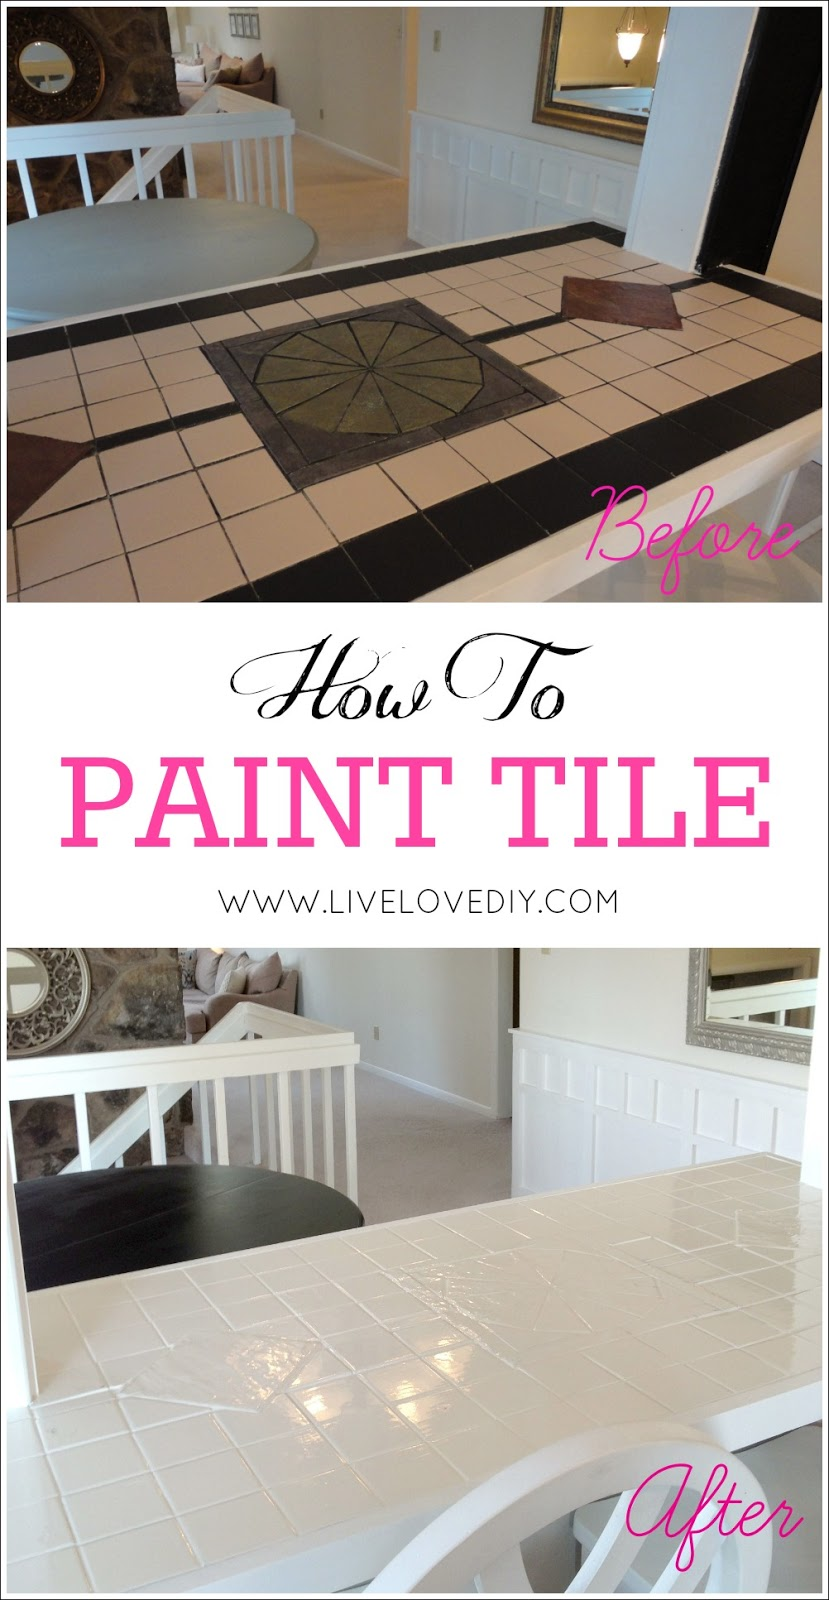 Kitchen Counter Tile Livelovediy How To Paint Tile Countertops